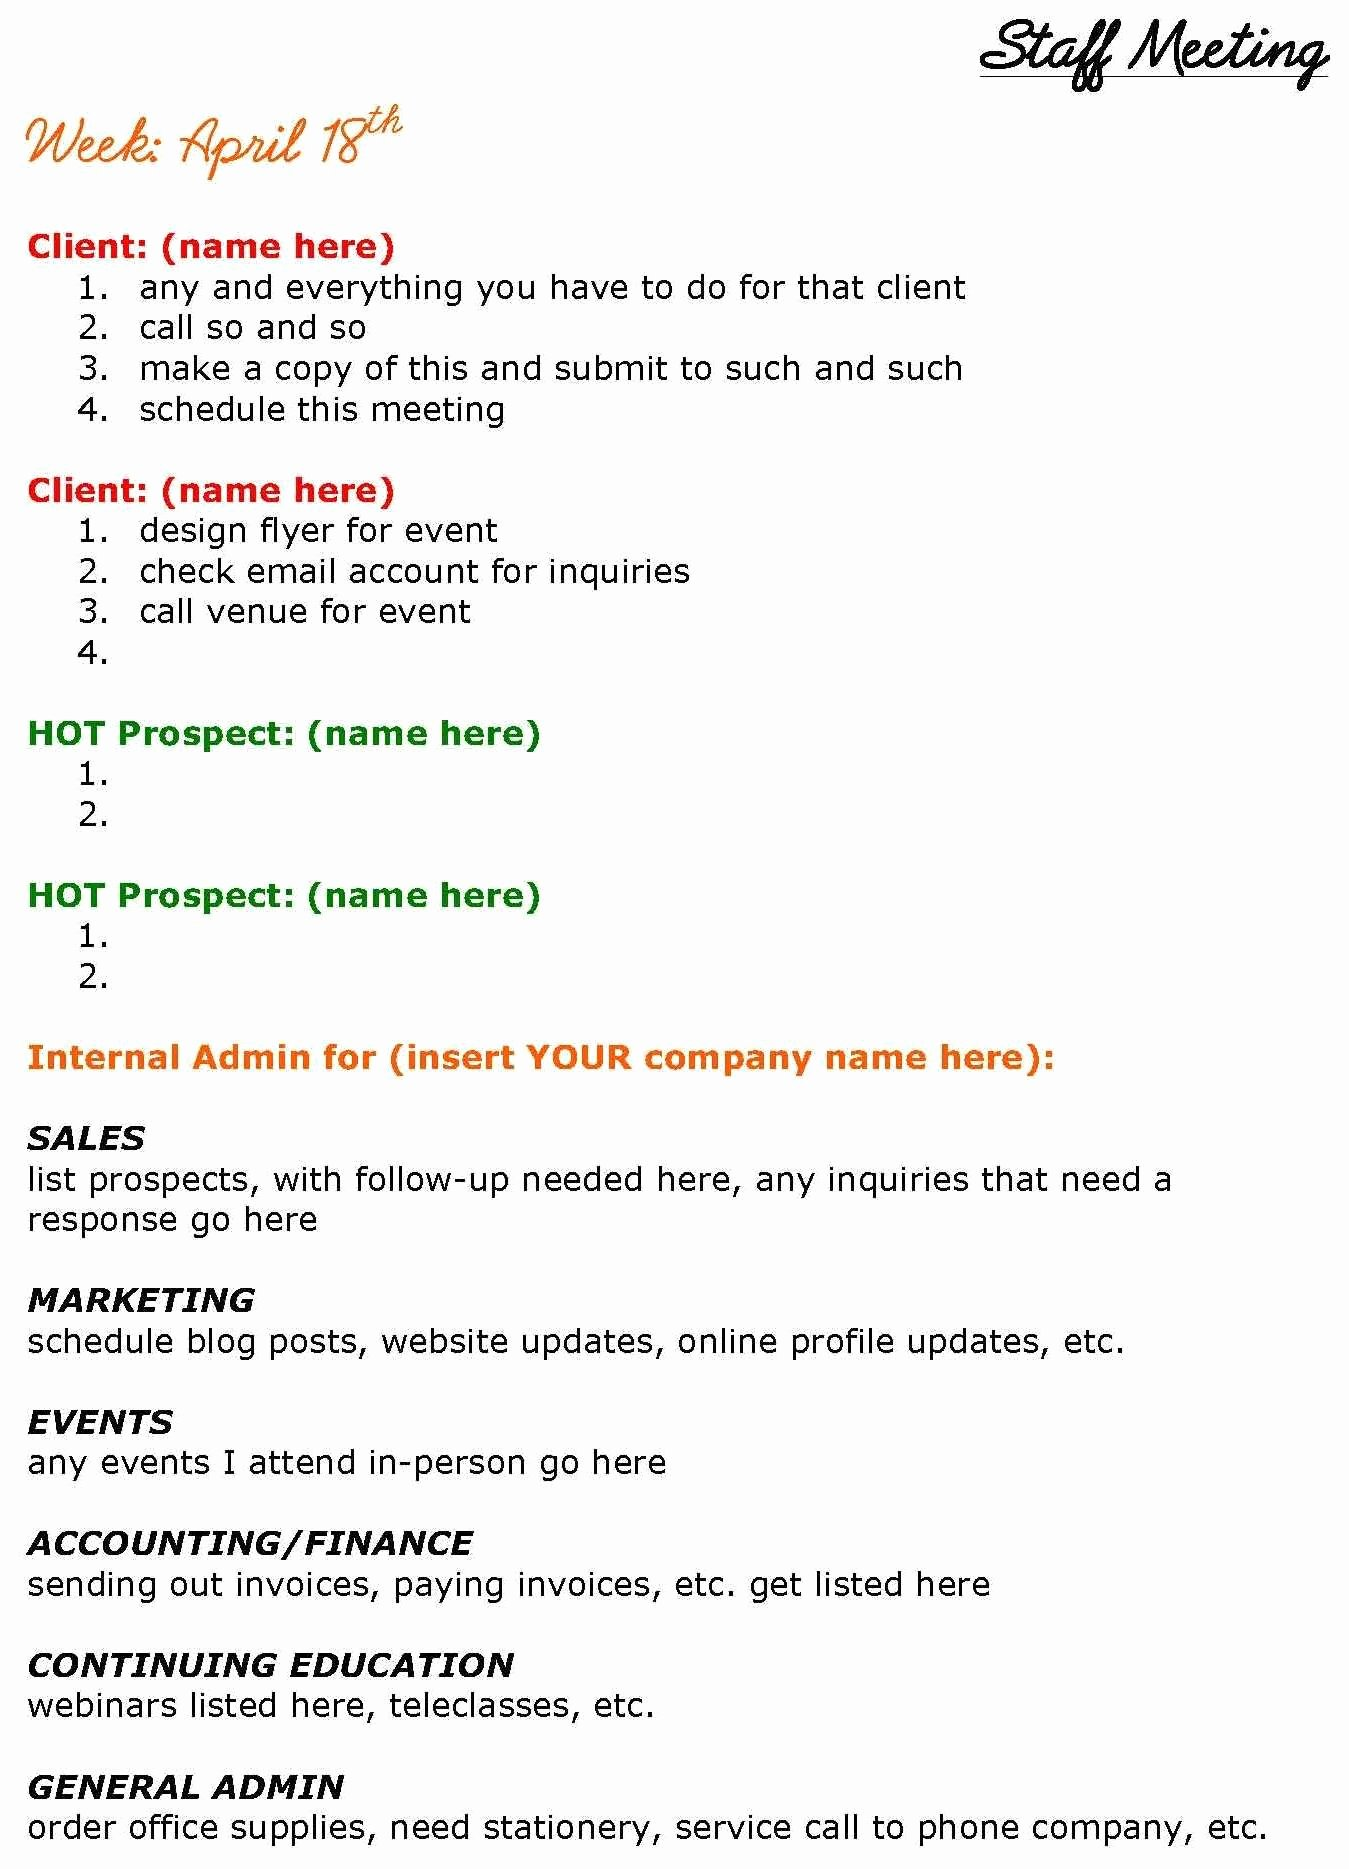 Staff Meetings Agenda Template Best Of solopreneurs Need Staff Meetings too See This Staff